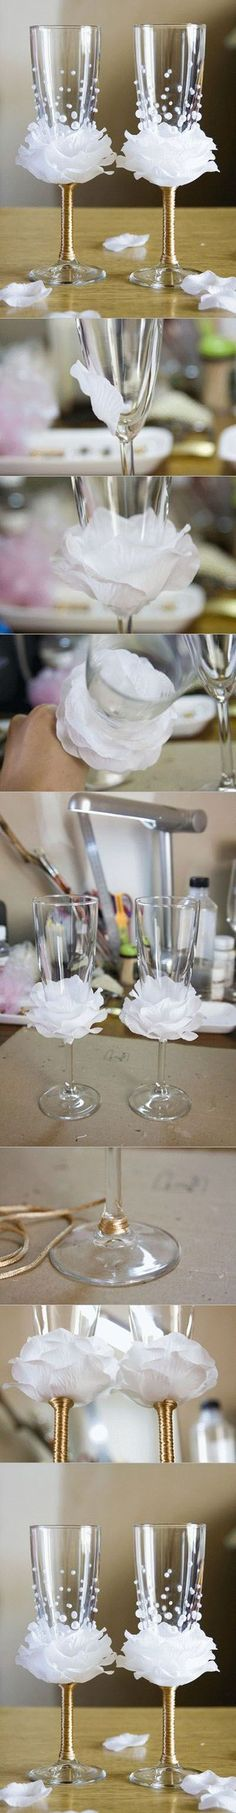 12-DIY-Flower-Bead-Decorated-Wine-Glasses984125.jpg (400×3073)